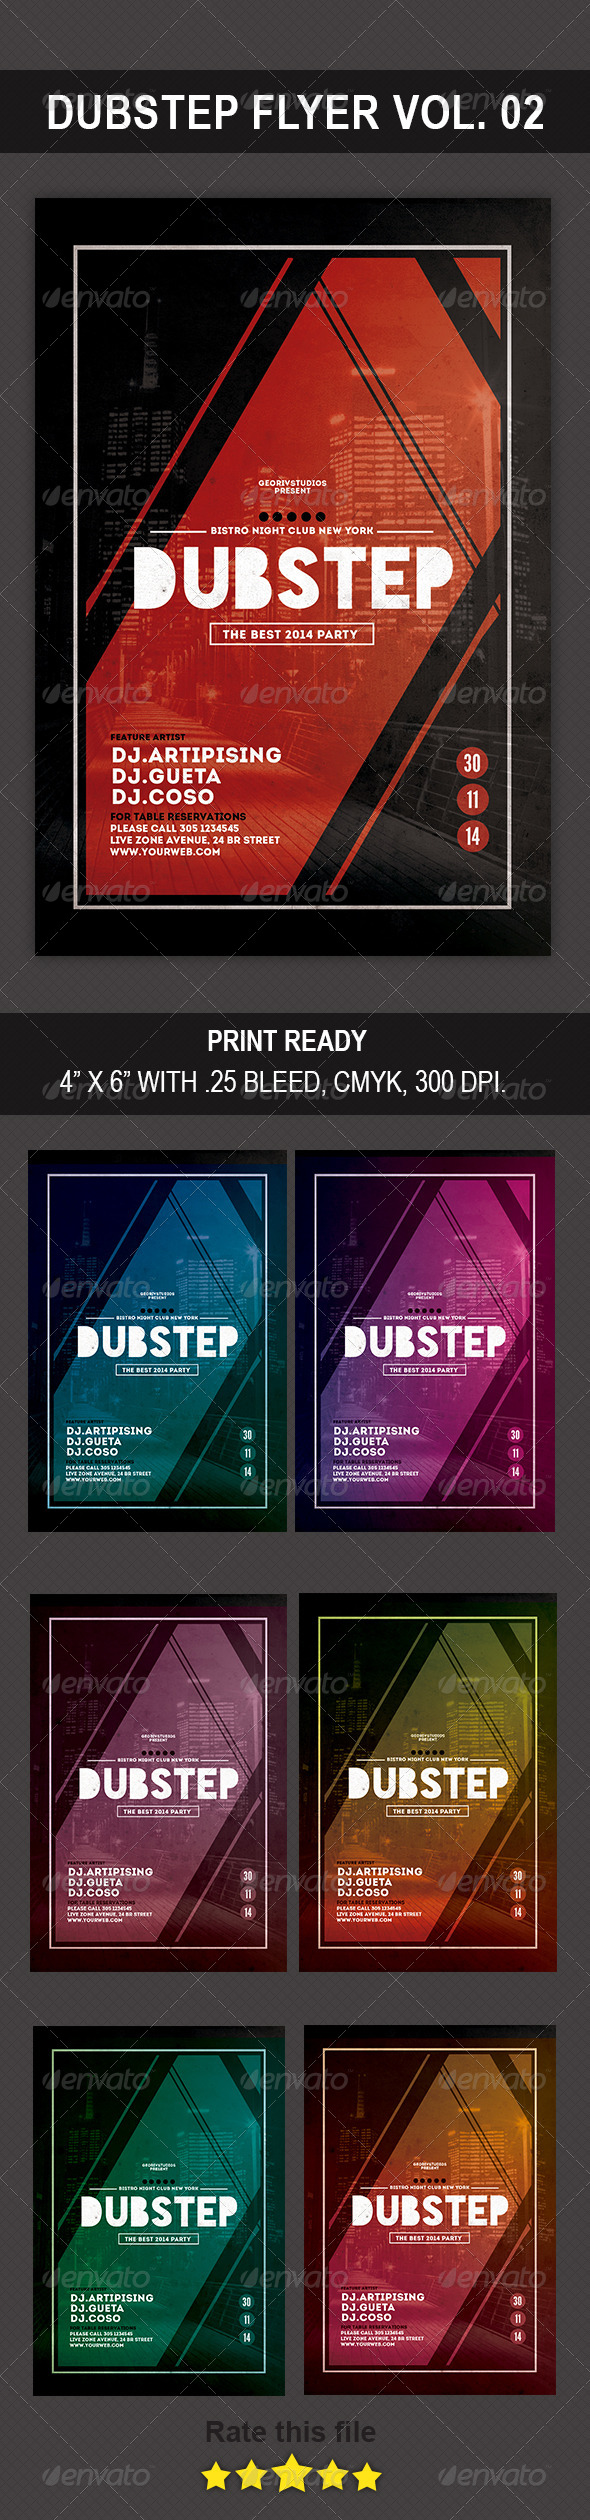 GraphicRiver Dubstep Flyer Vol 02 8771834